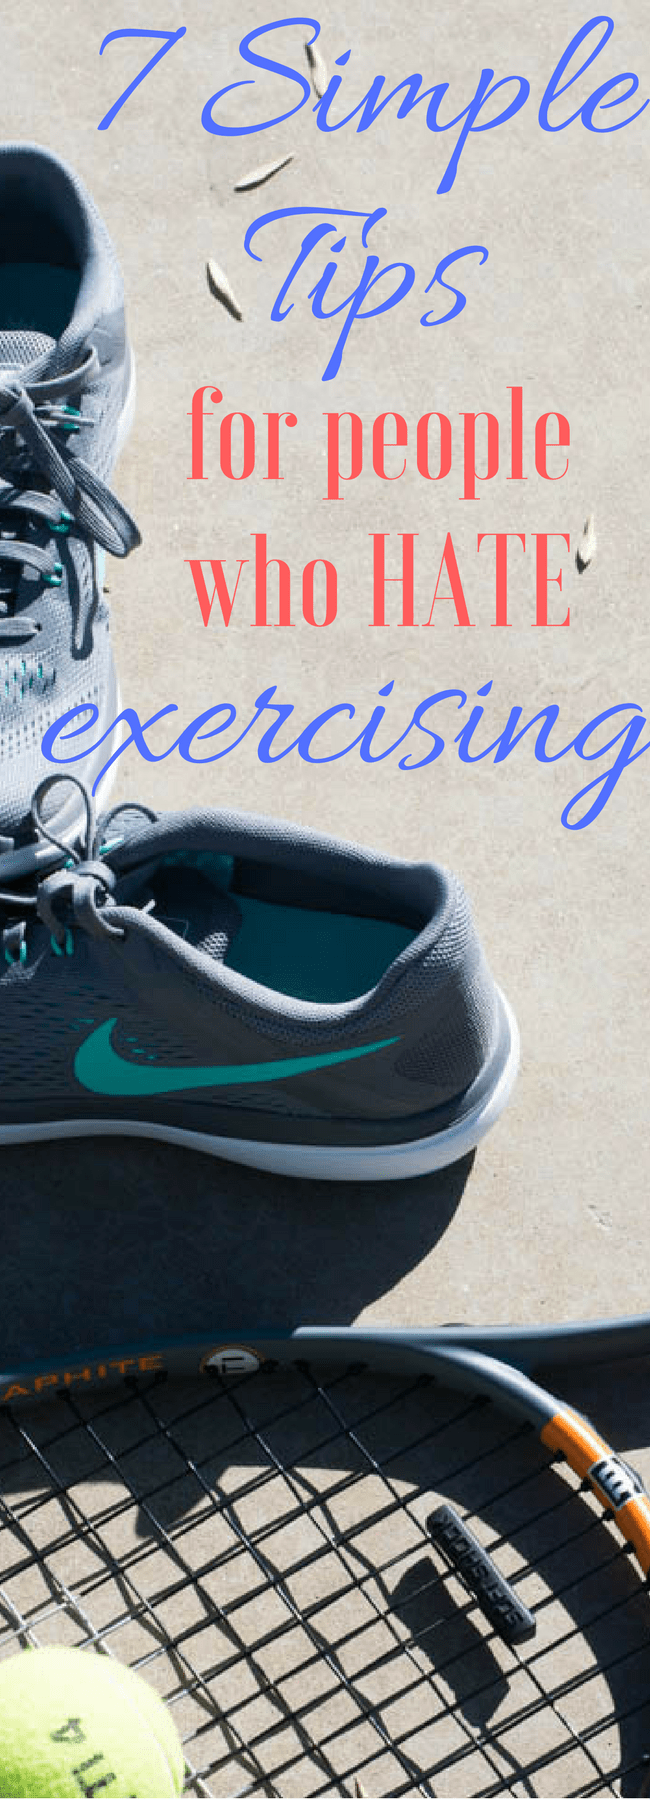 7 Tips for People Who Hate Exercising via @clarkscondensed